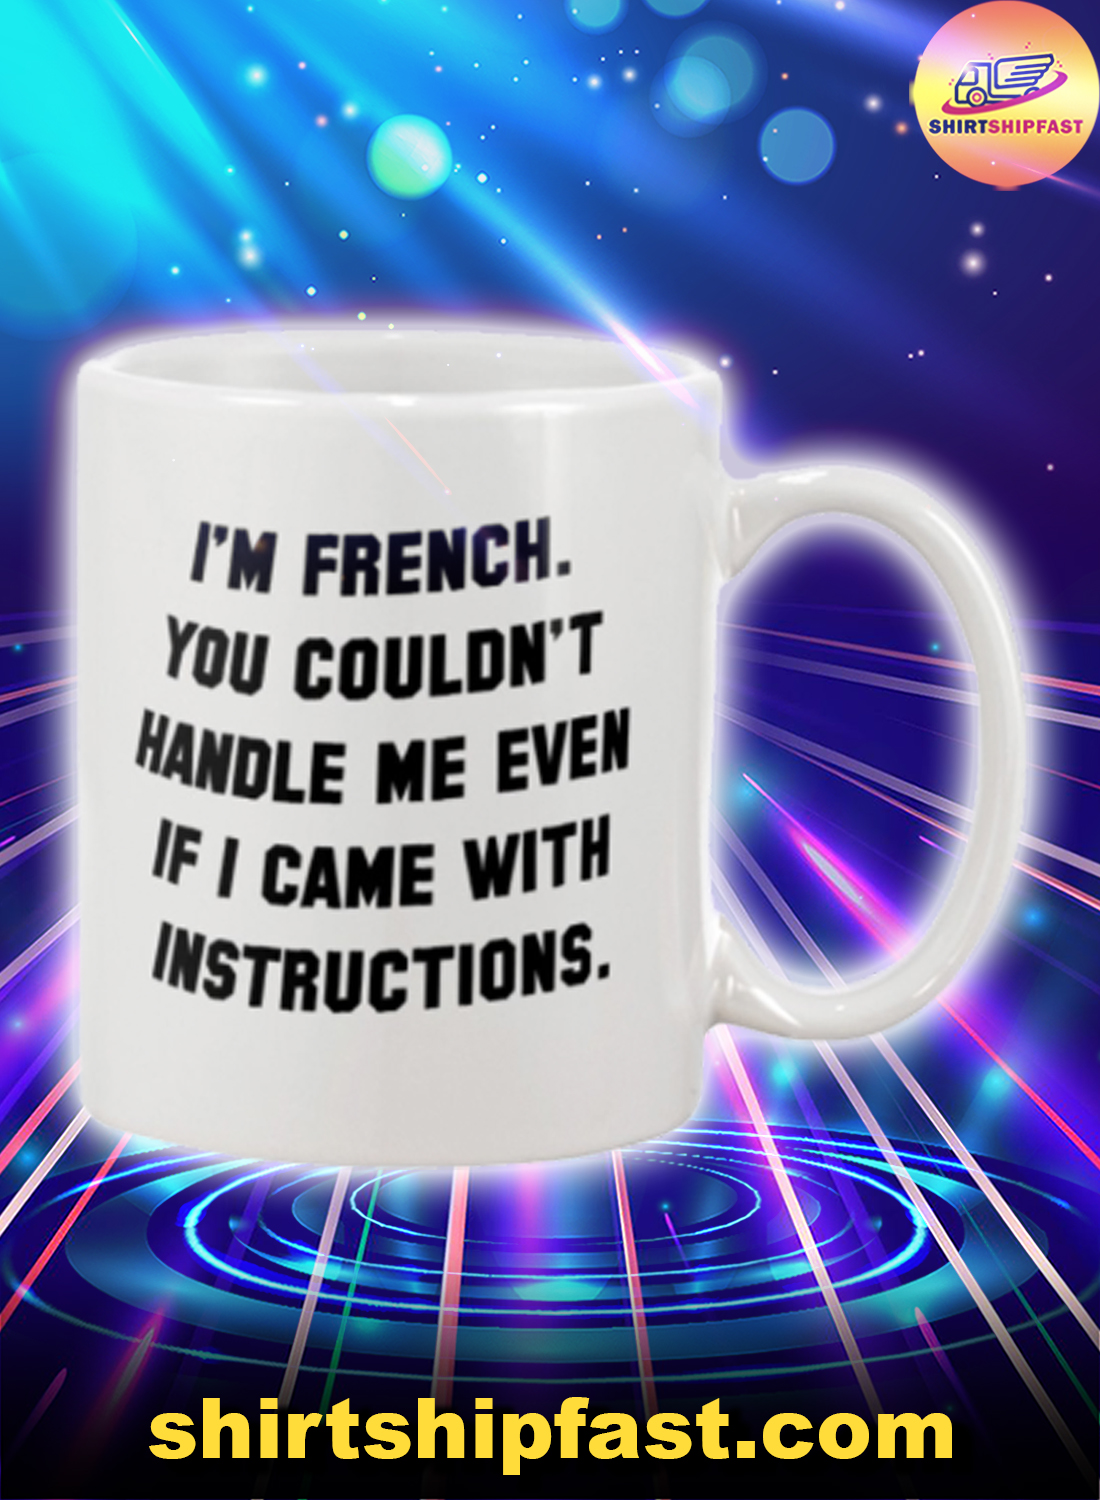 I'm French you couldn't handle me even if I came with intructions mug